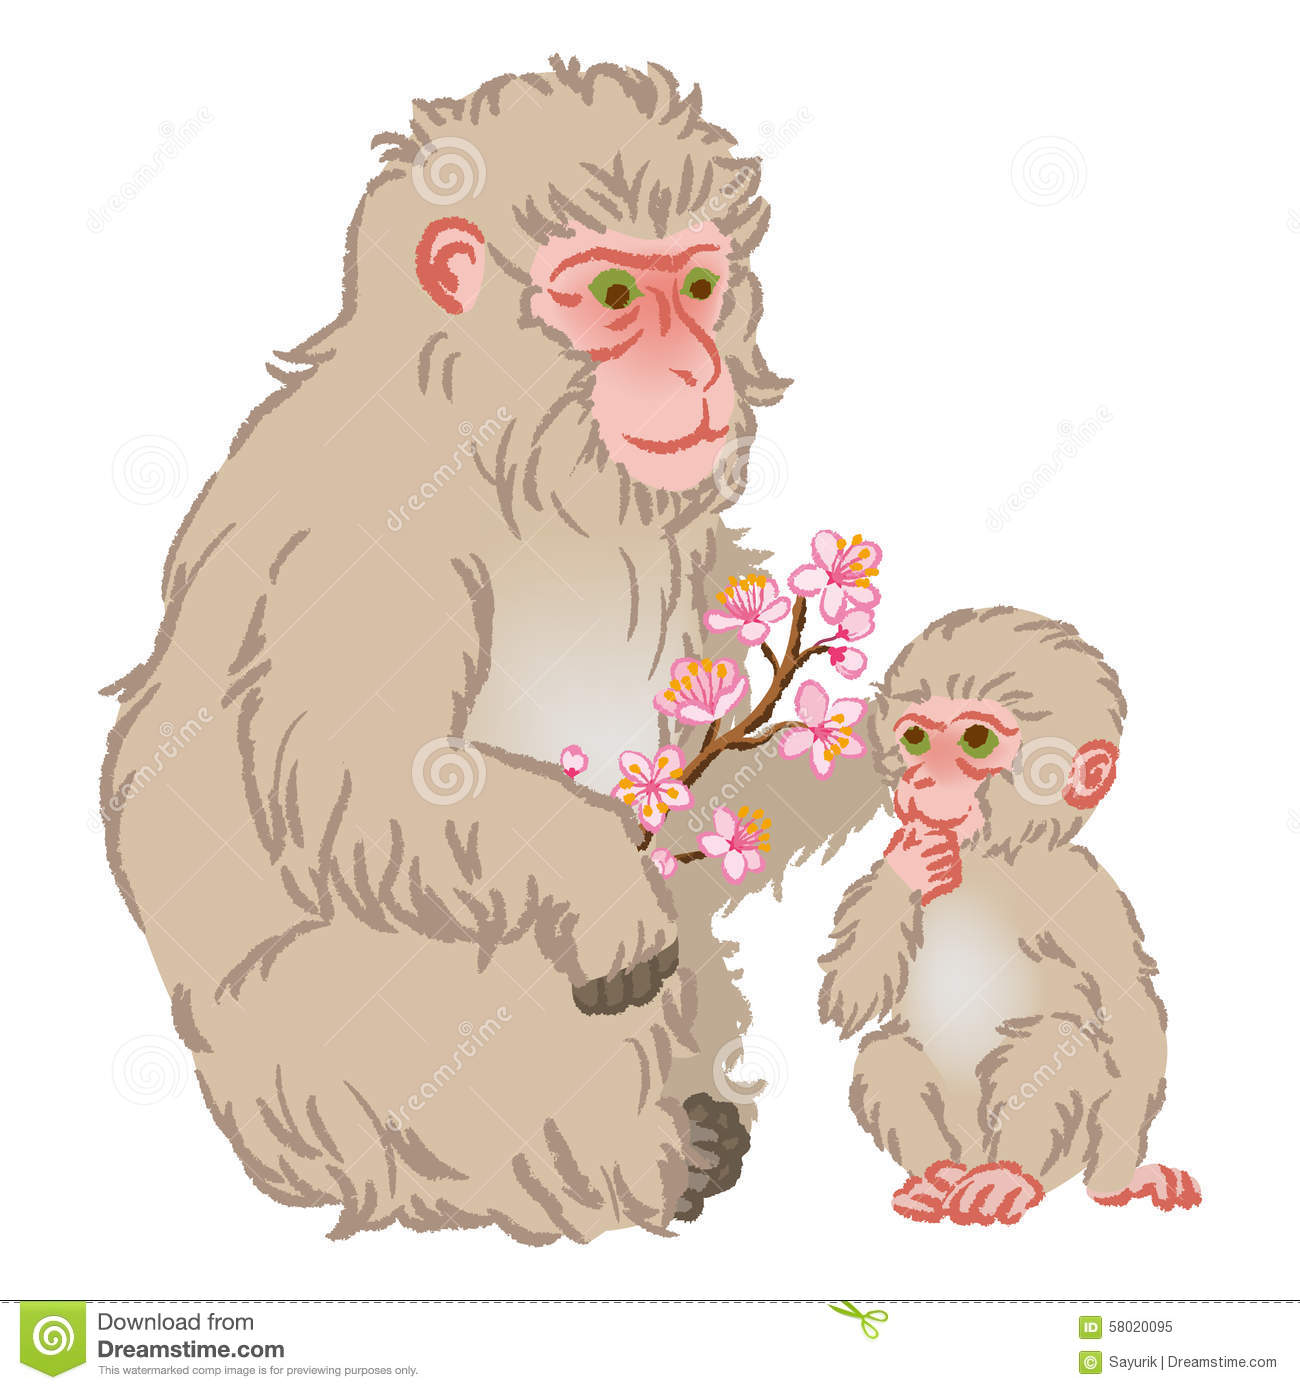 Snow Monkey clipart #18, Download drawings